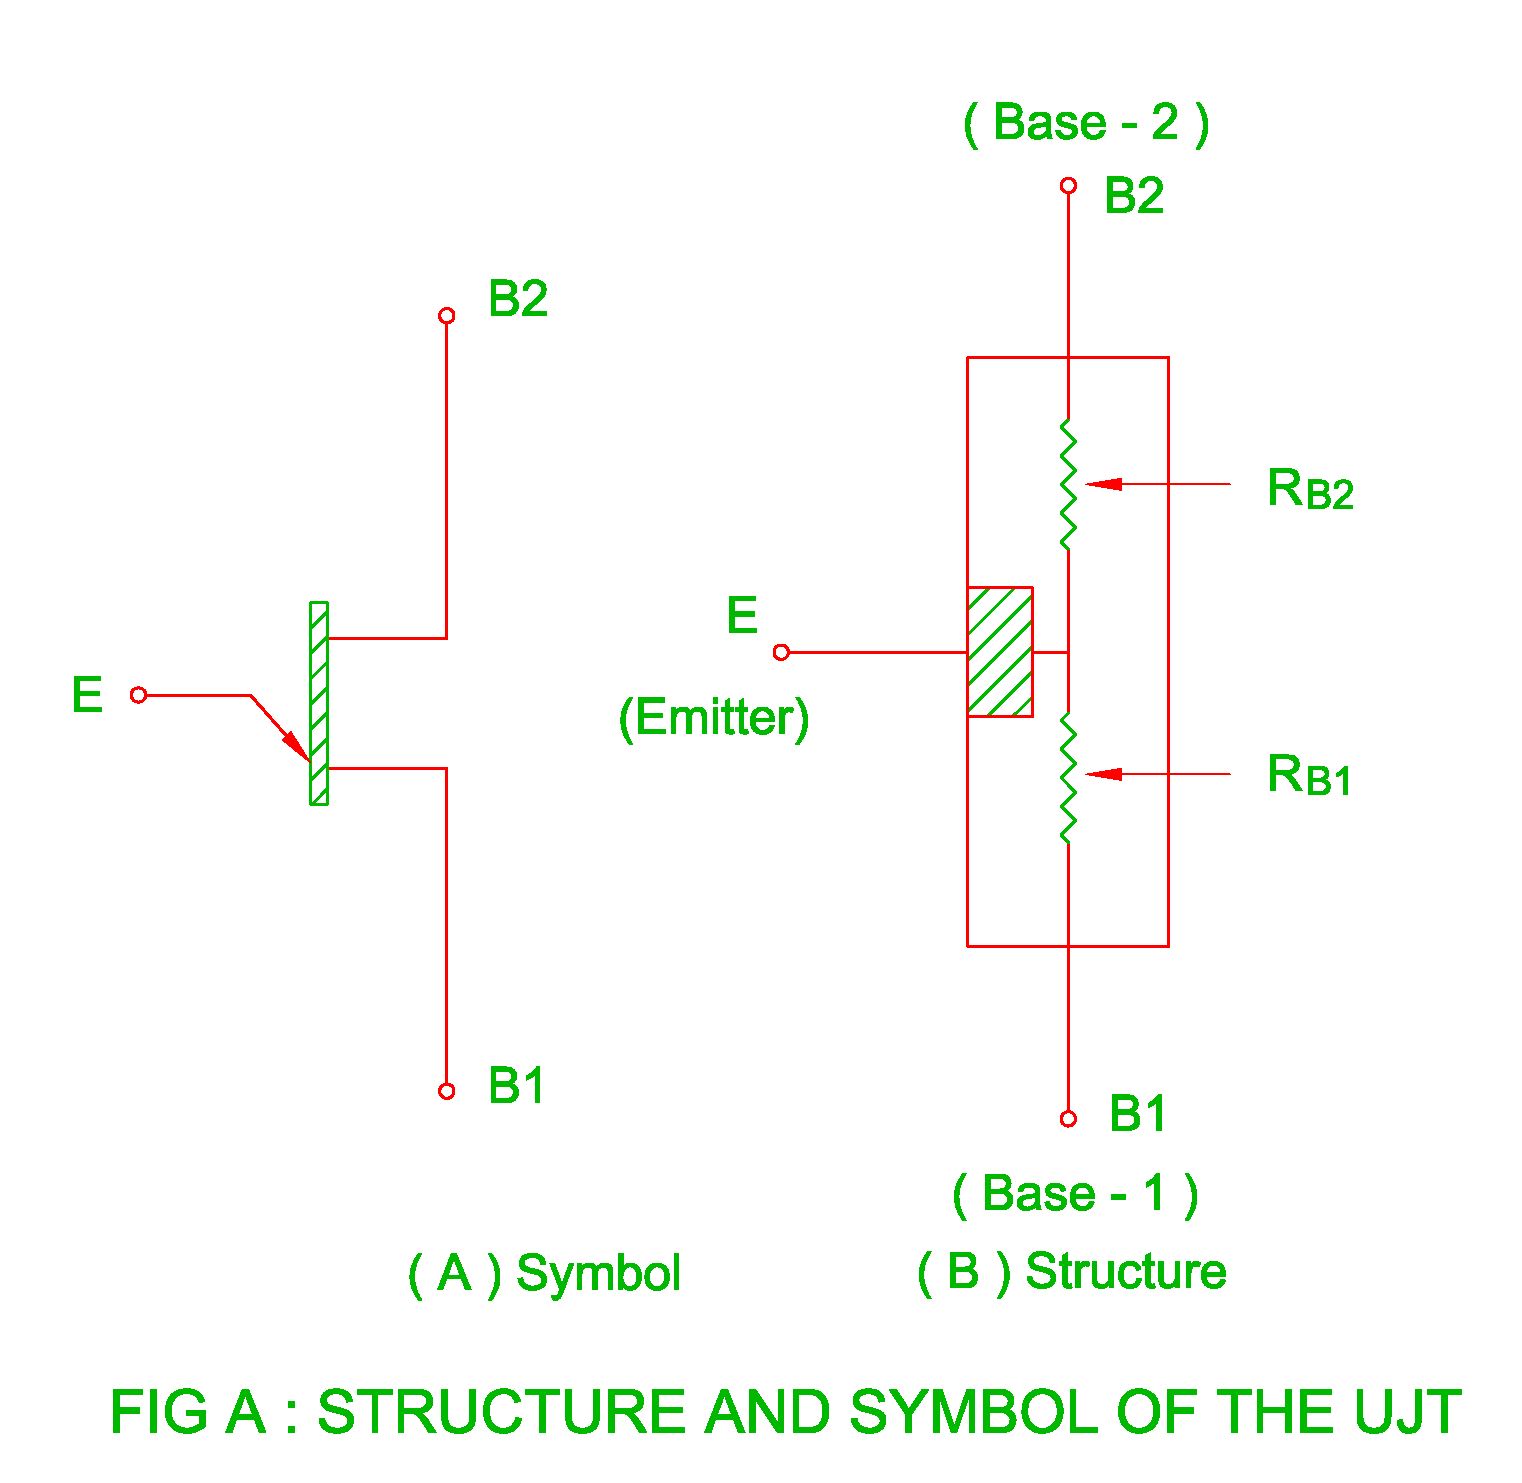 medium resolution of it has three terminals base 1 b 1 base 2 b 2 and emitter the structure and symbol of the ujt is shown in the figure a